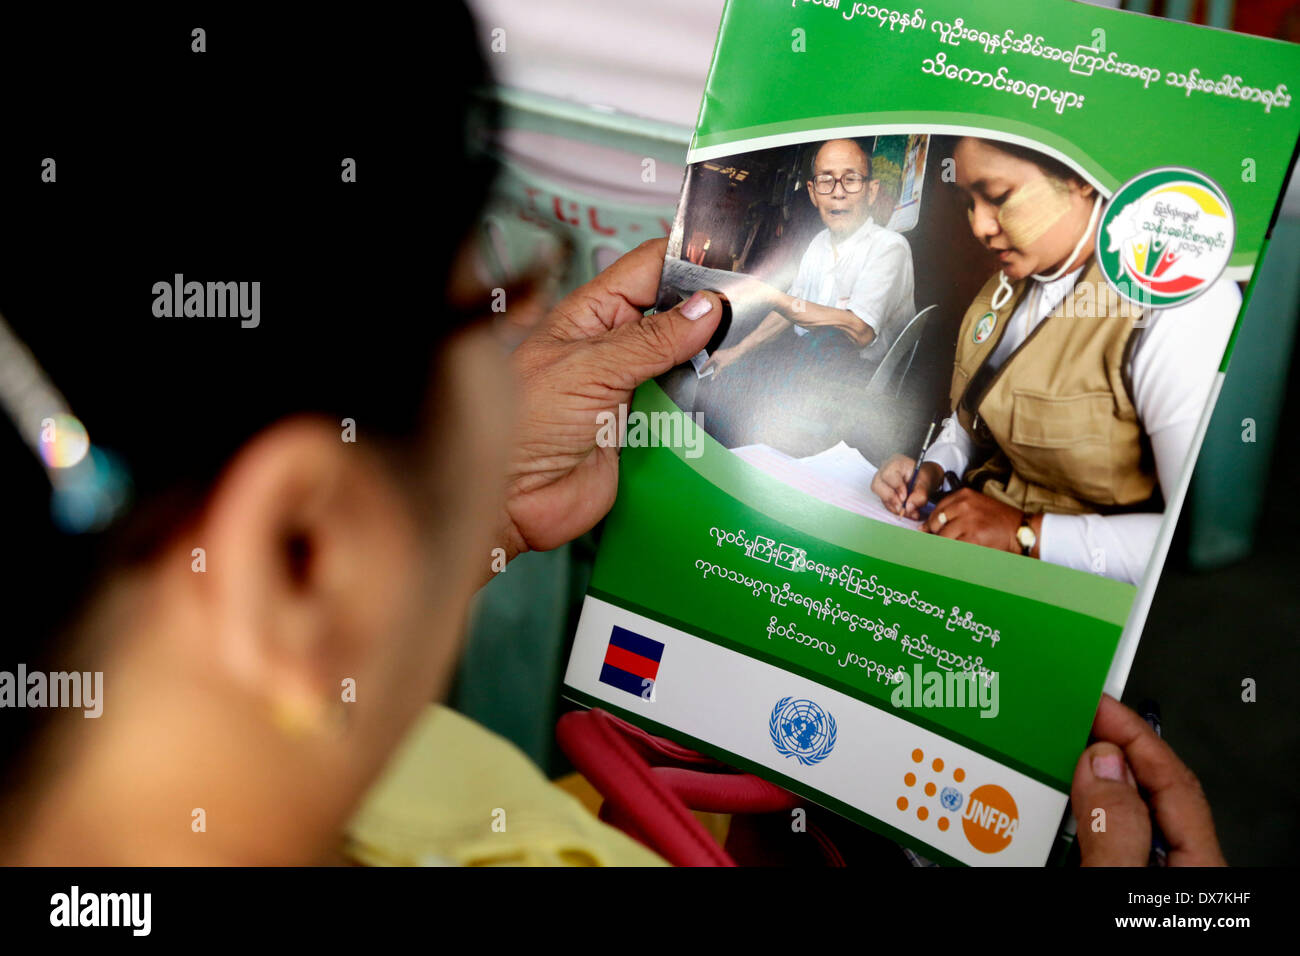 Yangon, March 20. 10th Apr, 2014. An enumerator for 2014 national census reads a brochure during the training course in enumeration techniques in Yangon, Myanmar, March 20, 2014. The 12-day census using a work force of 120,000 will be carried out from March 30 to April 10, 2014. © U Aung/Xinhua/Alamy Live News - Stock Image